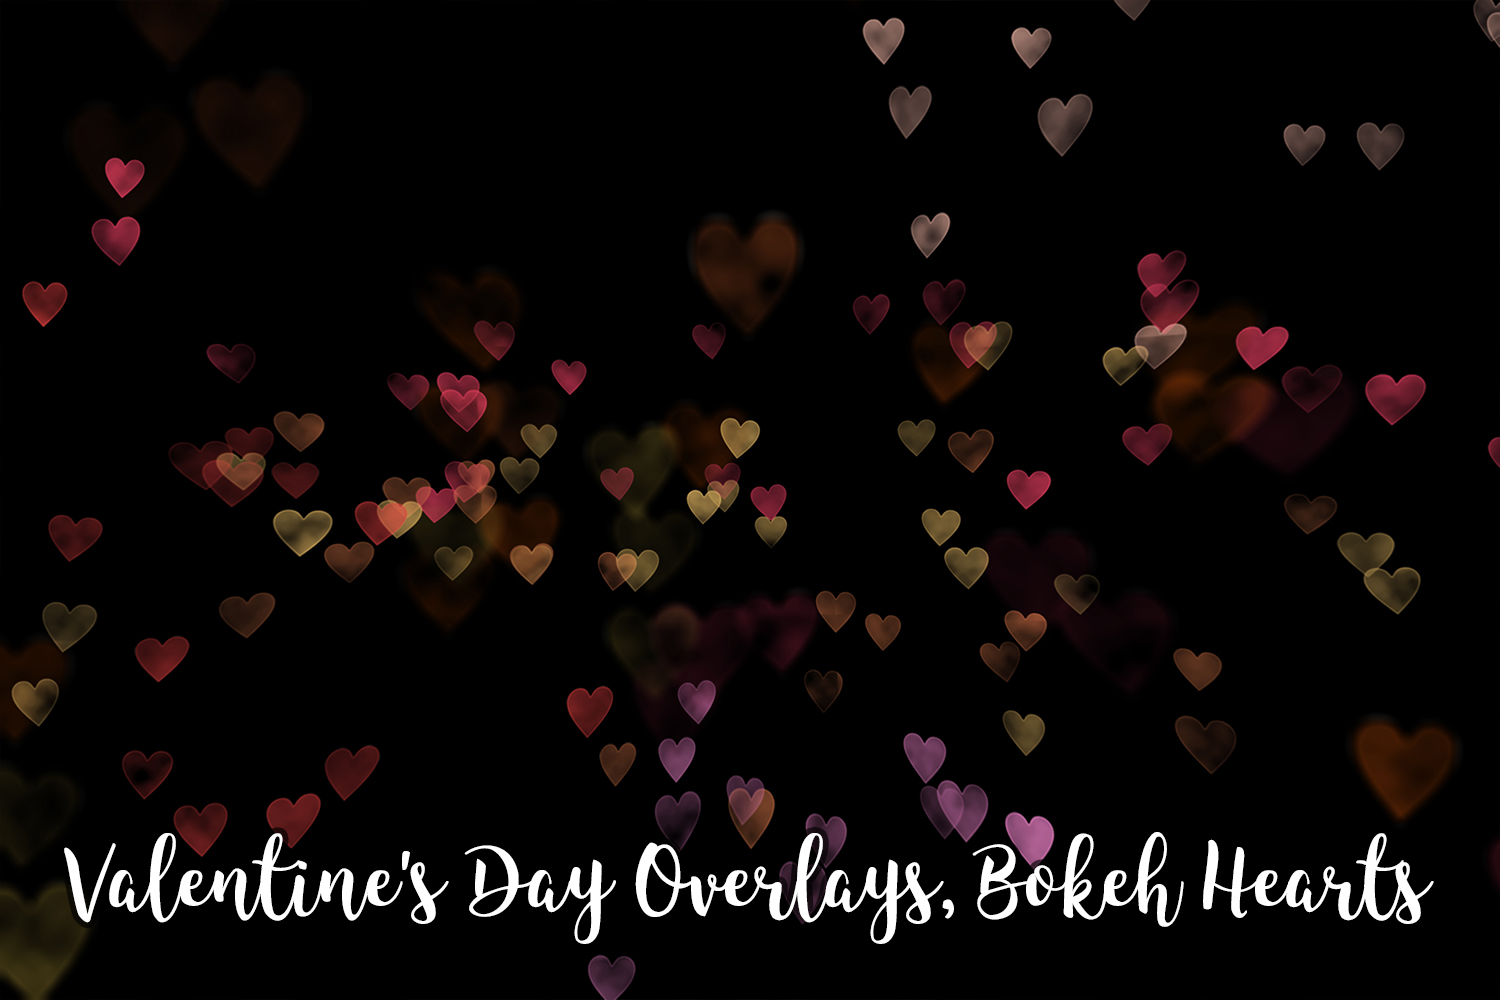 Valentine's Day Overlays, Bokeh Hearts Overlays example image 5